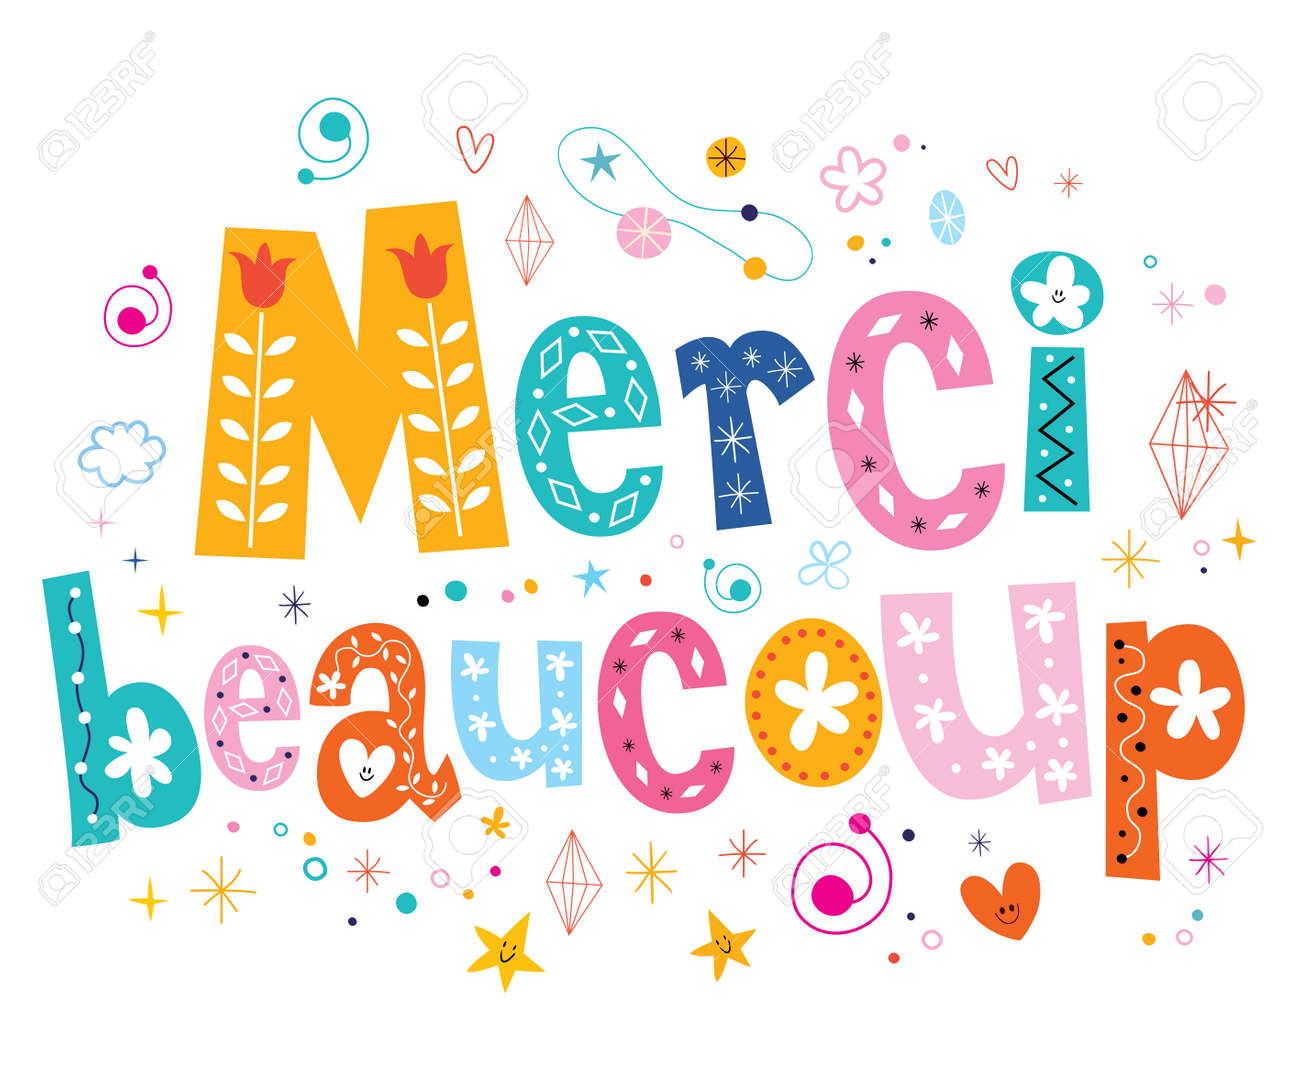 Merci beaucoup thank you very much in French lettering design - 53937365